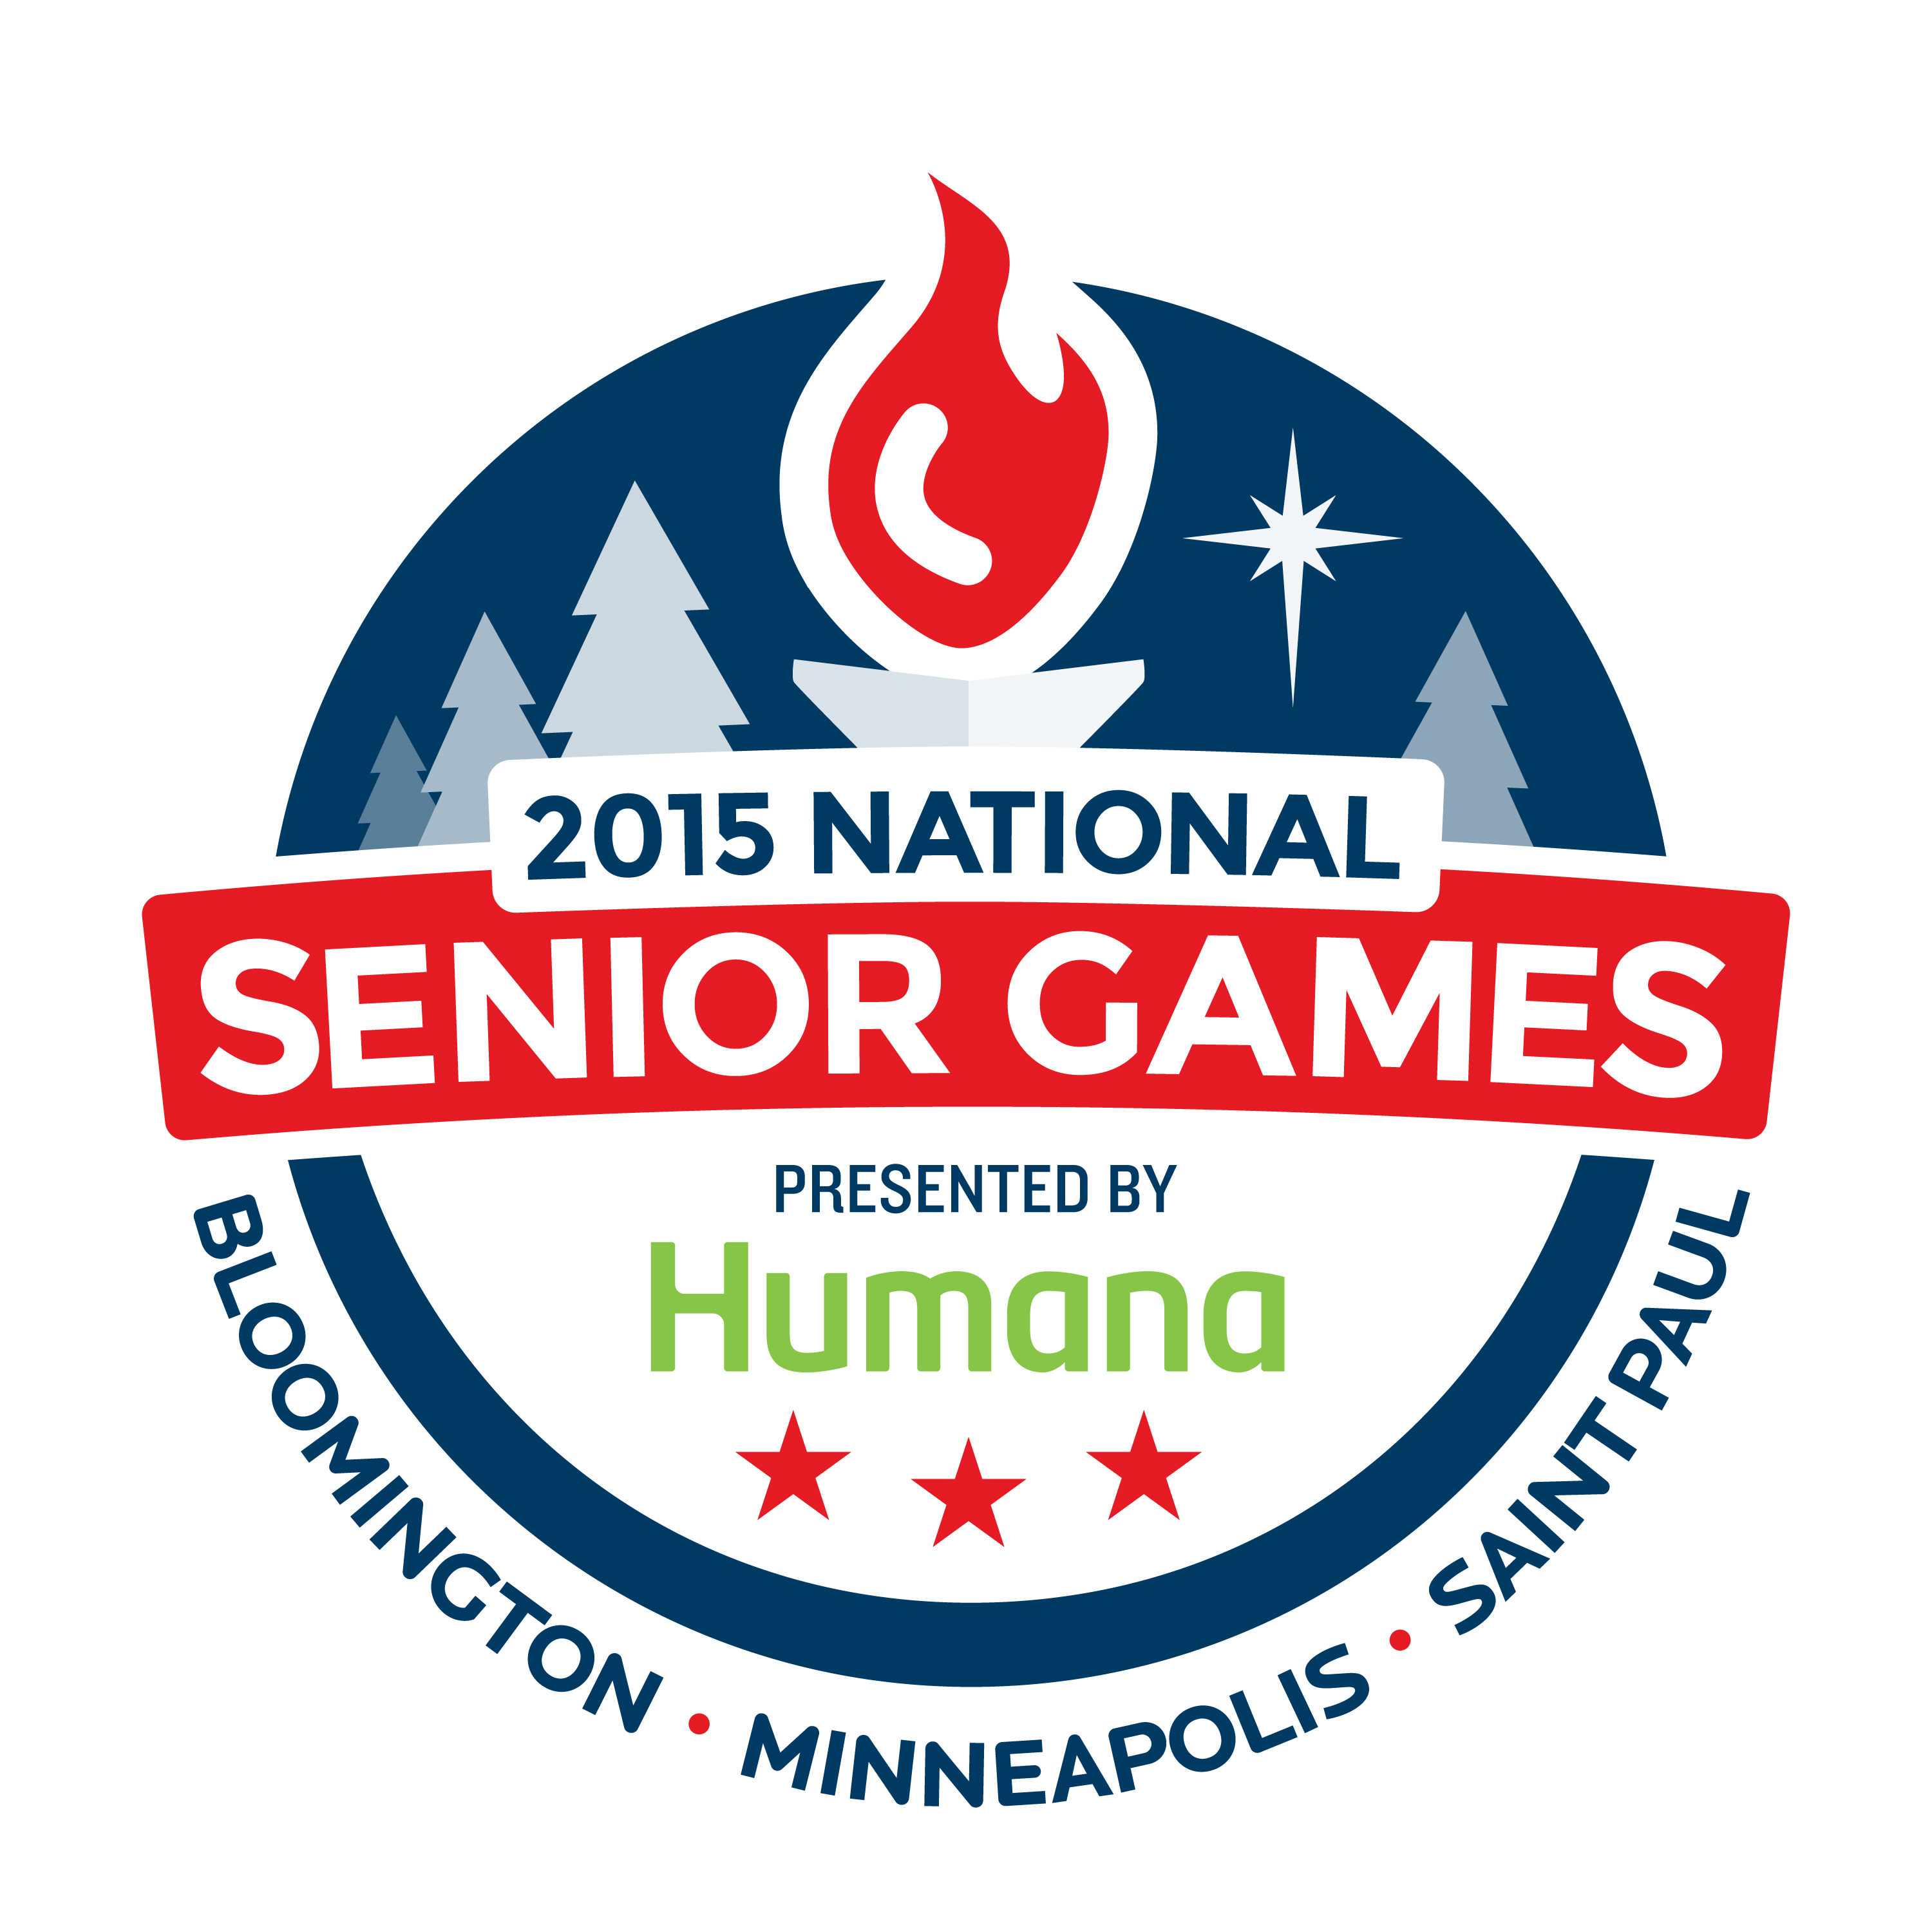 2015 National Senior Games Logo